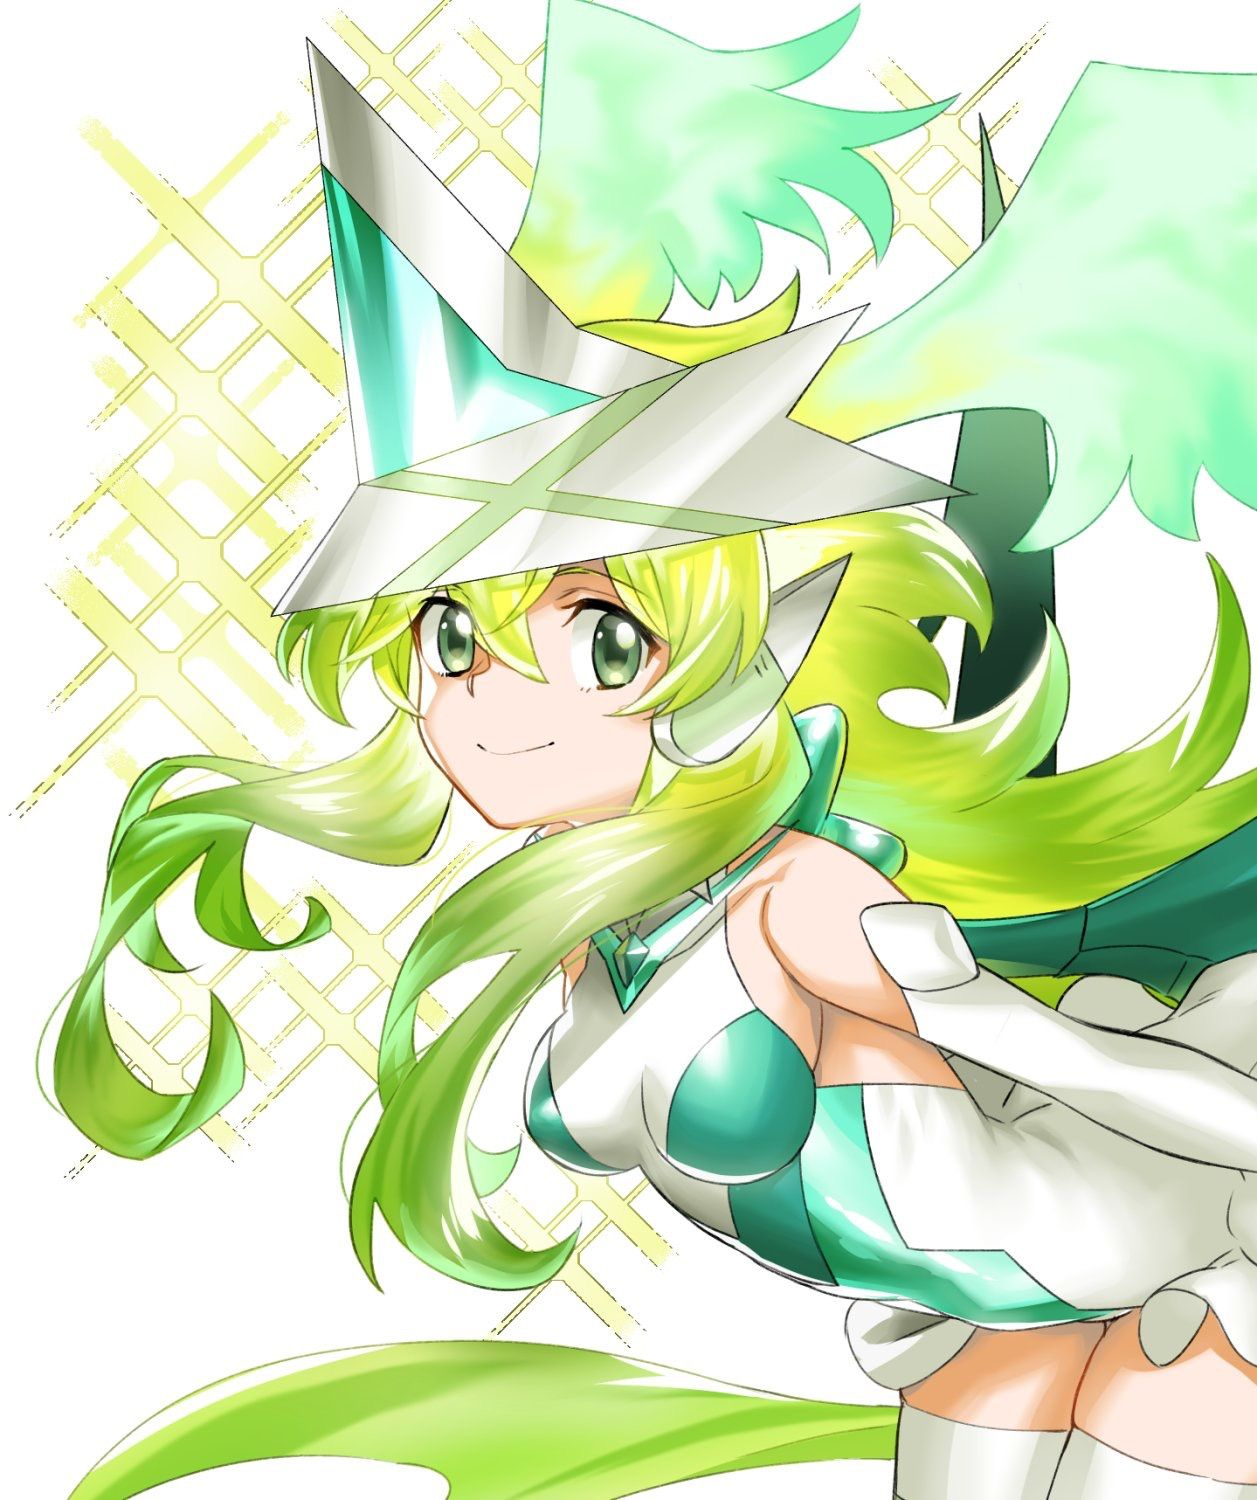 Pin by Thomas Grinnell on Symphogear Magical girl, Fan